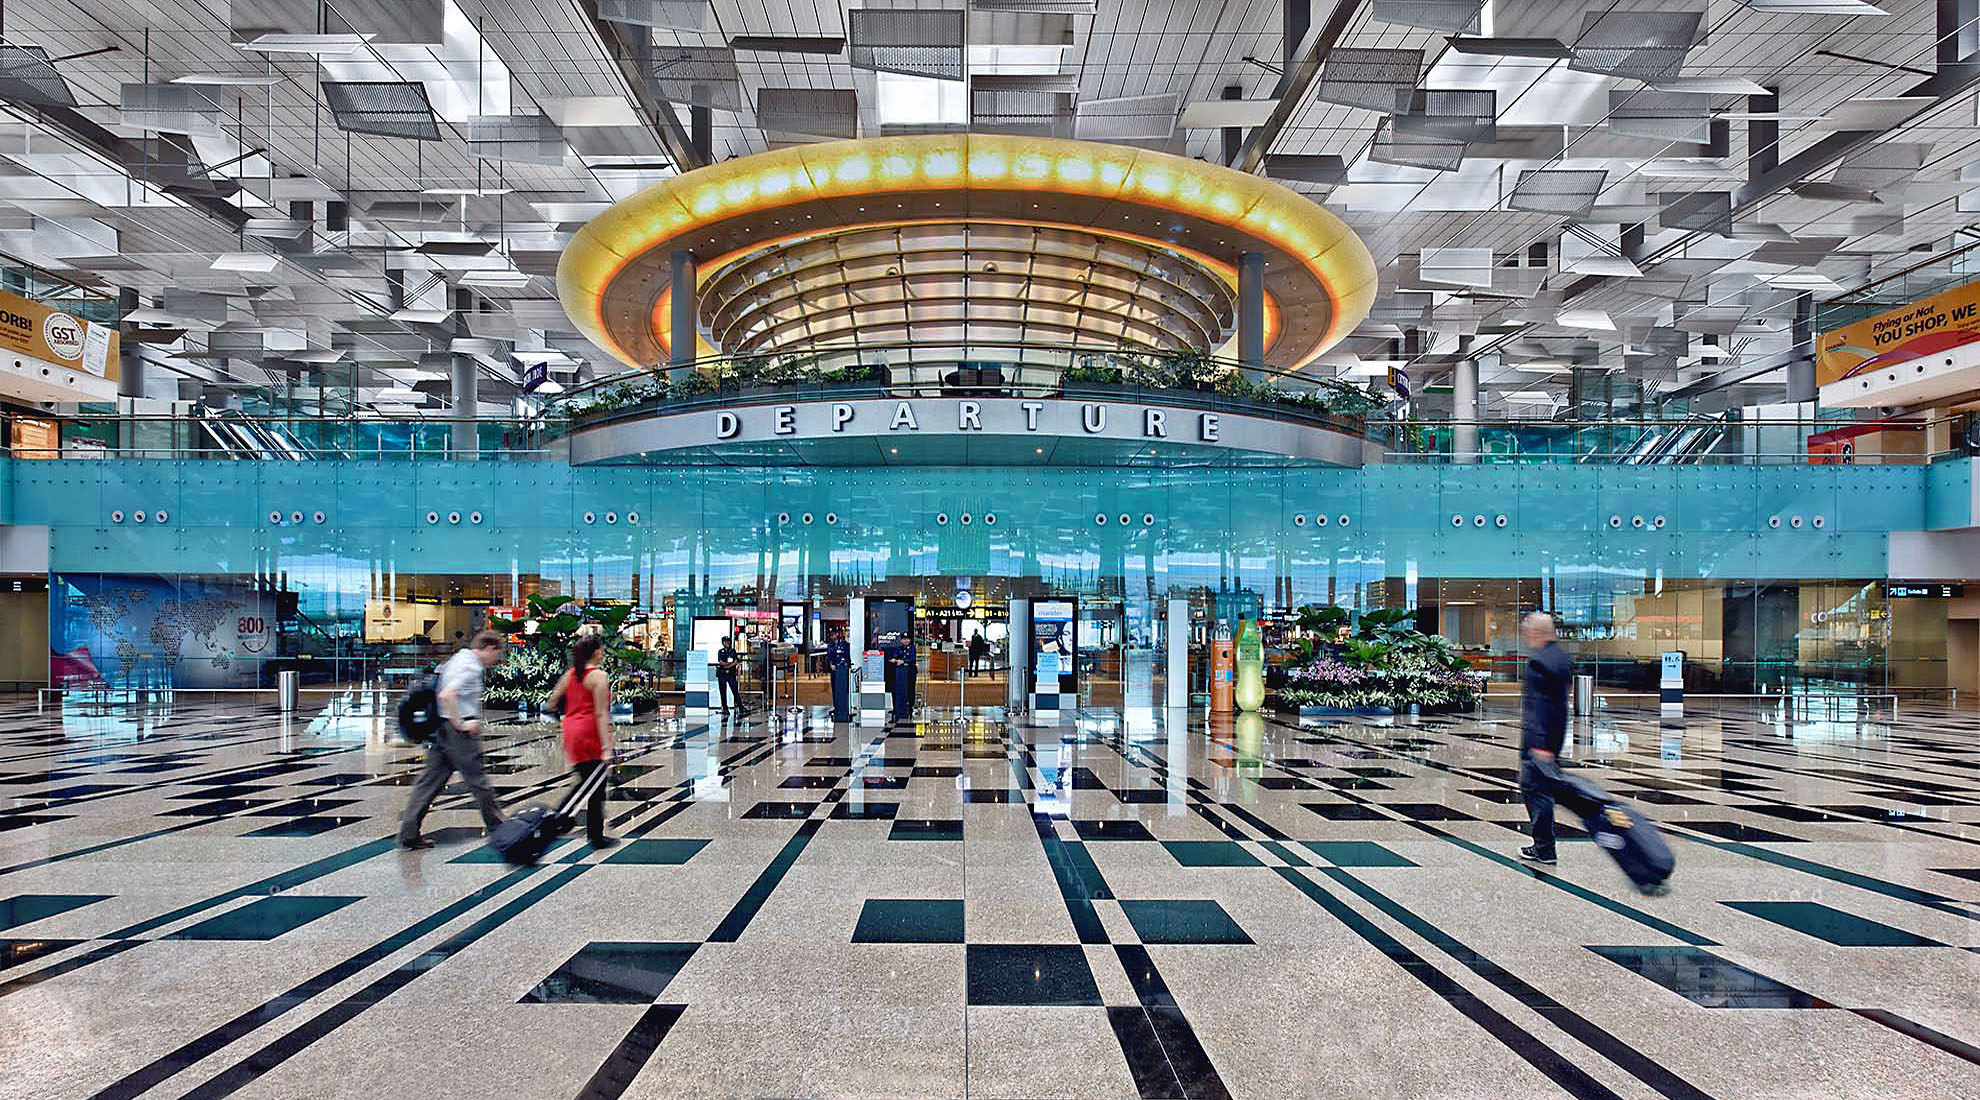 Architectural Photography of airports and transportation.